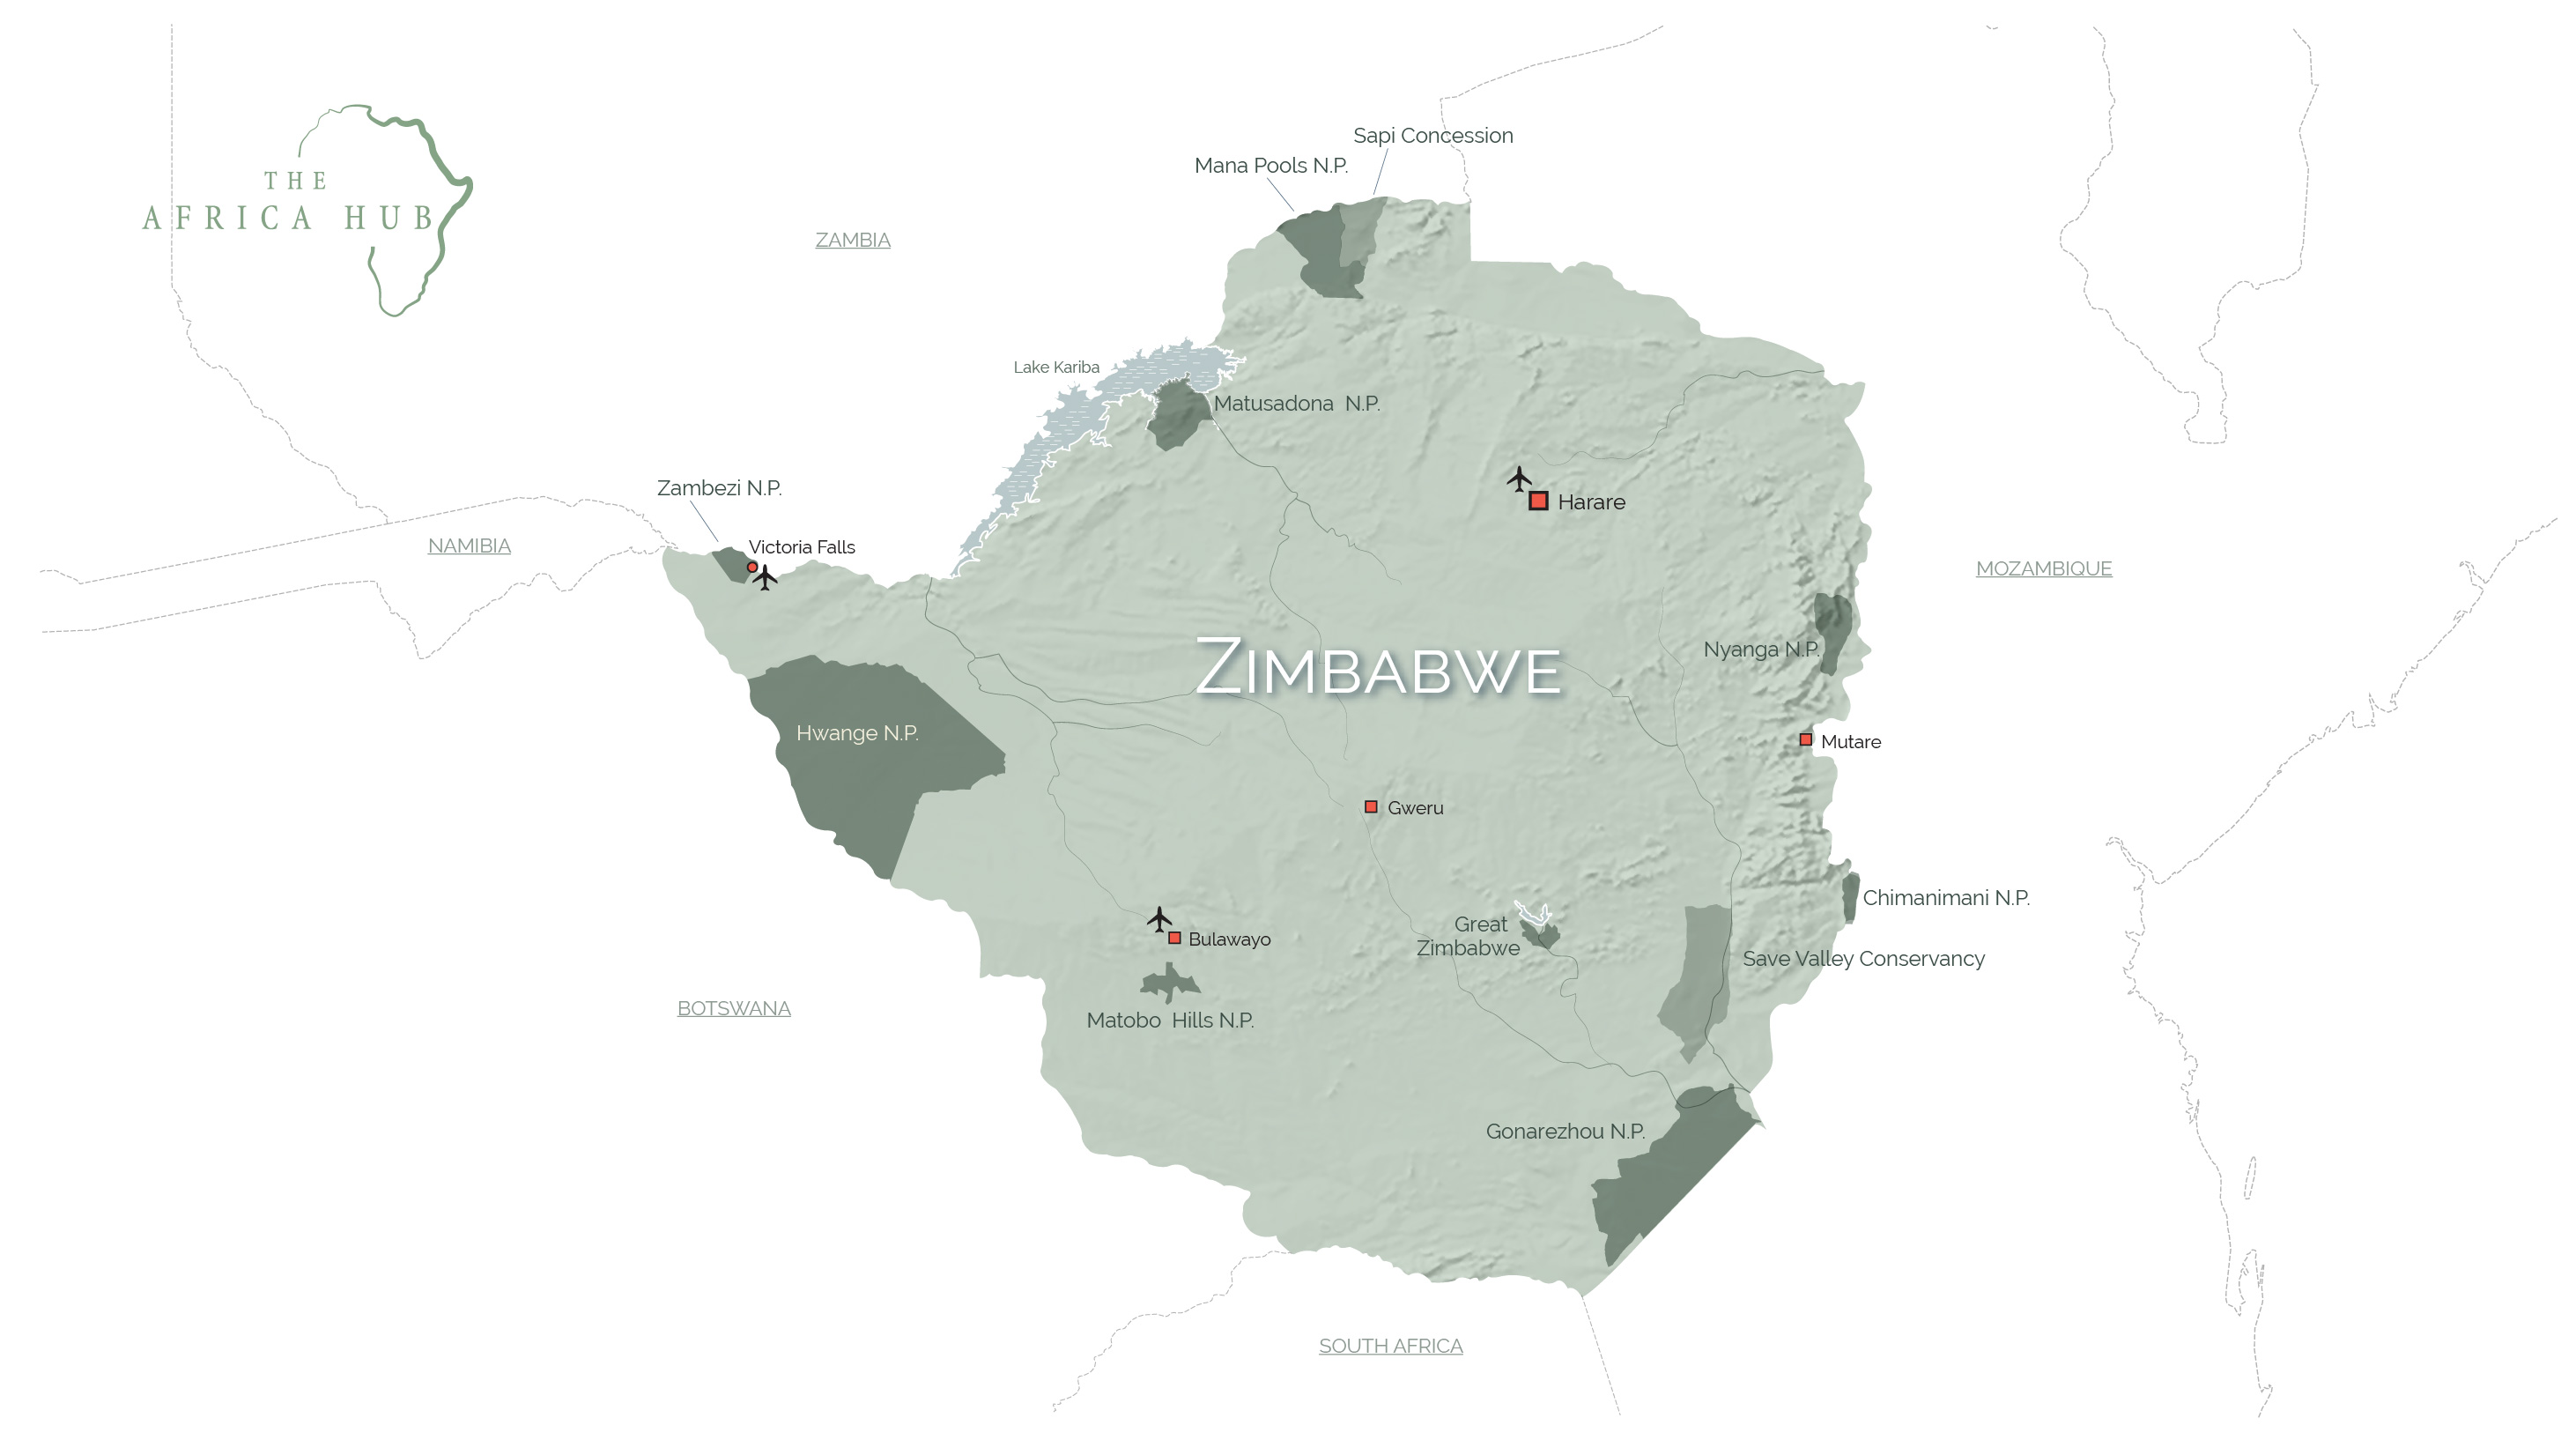 Map of Zimbabwe with key tourism sites highlighted